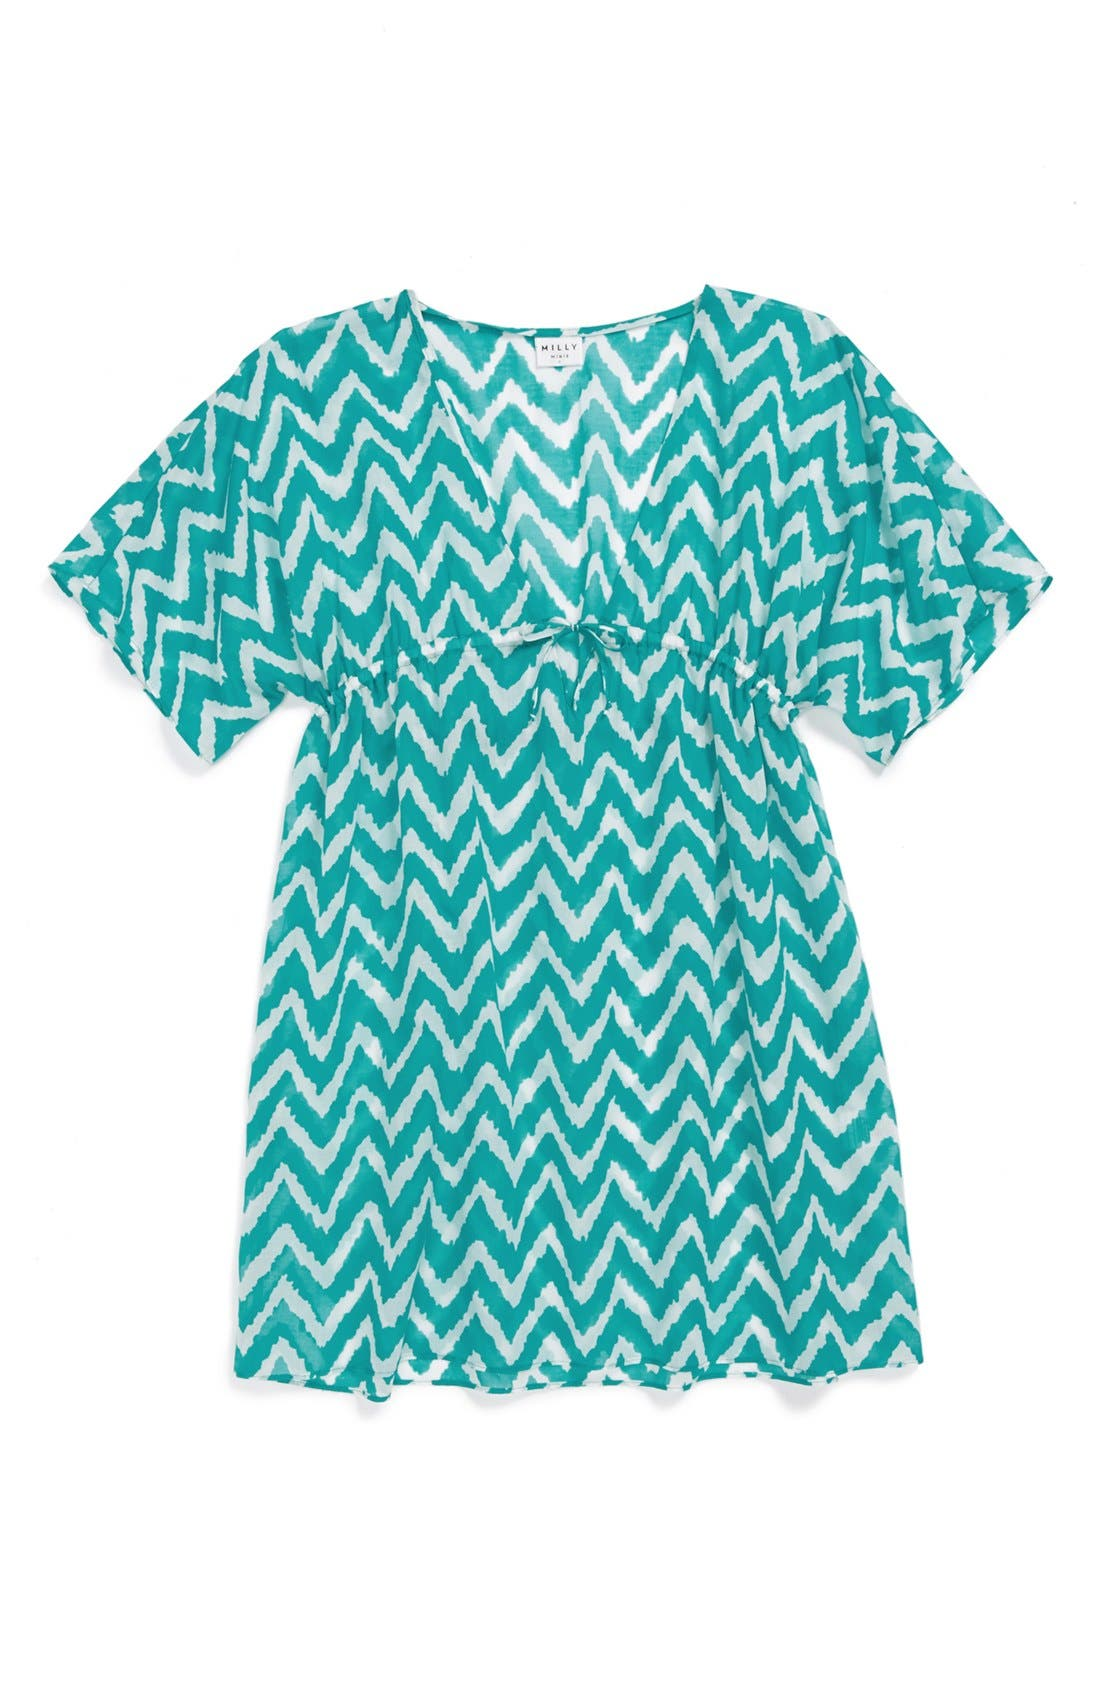 Main Image - Milly Minis Print Cover-Up (Big Girls)